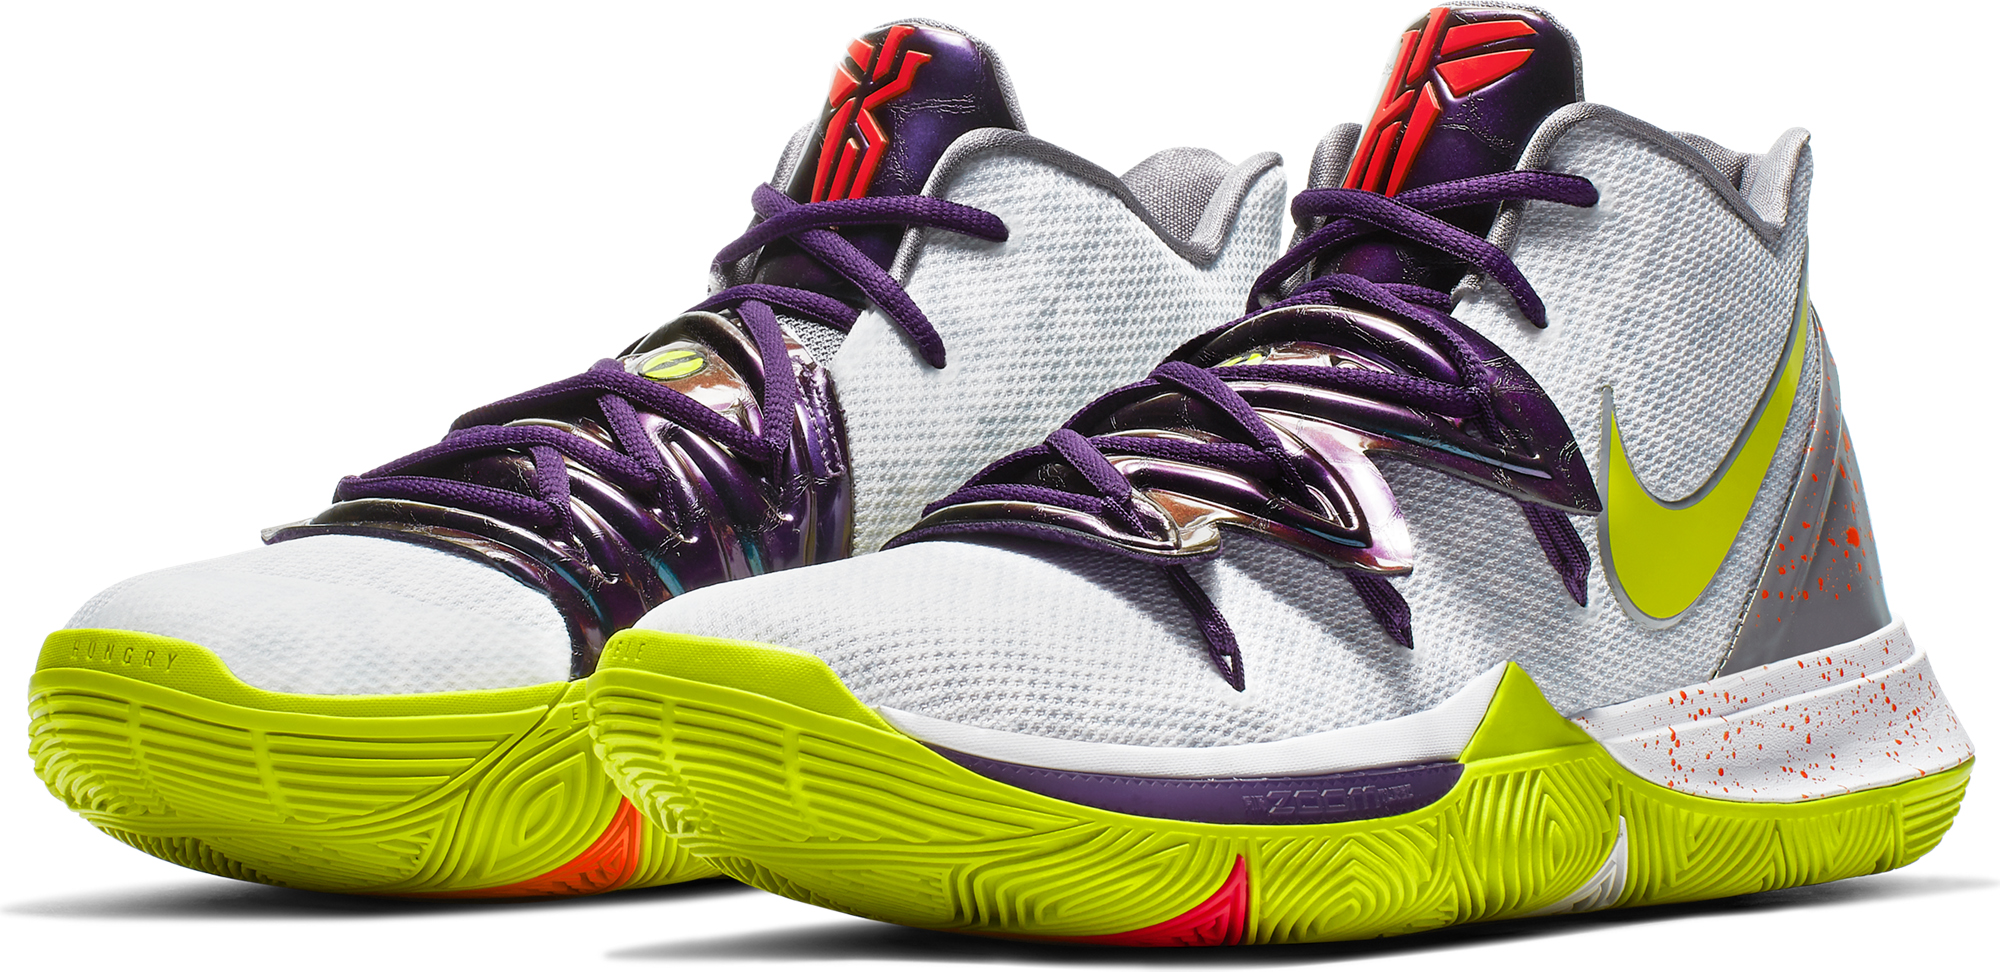 uk availability b81c6 629f9 DICK'S Sporting Goods Celebrating Mamba Day 2019 with the ...